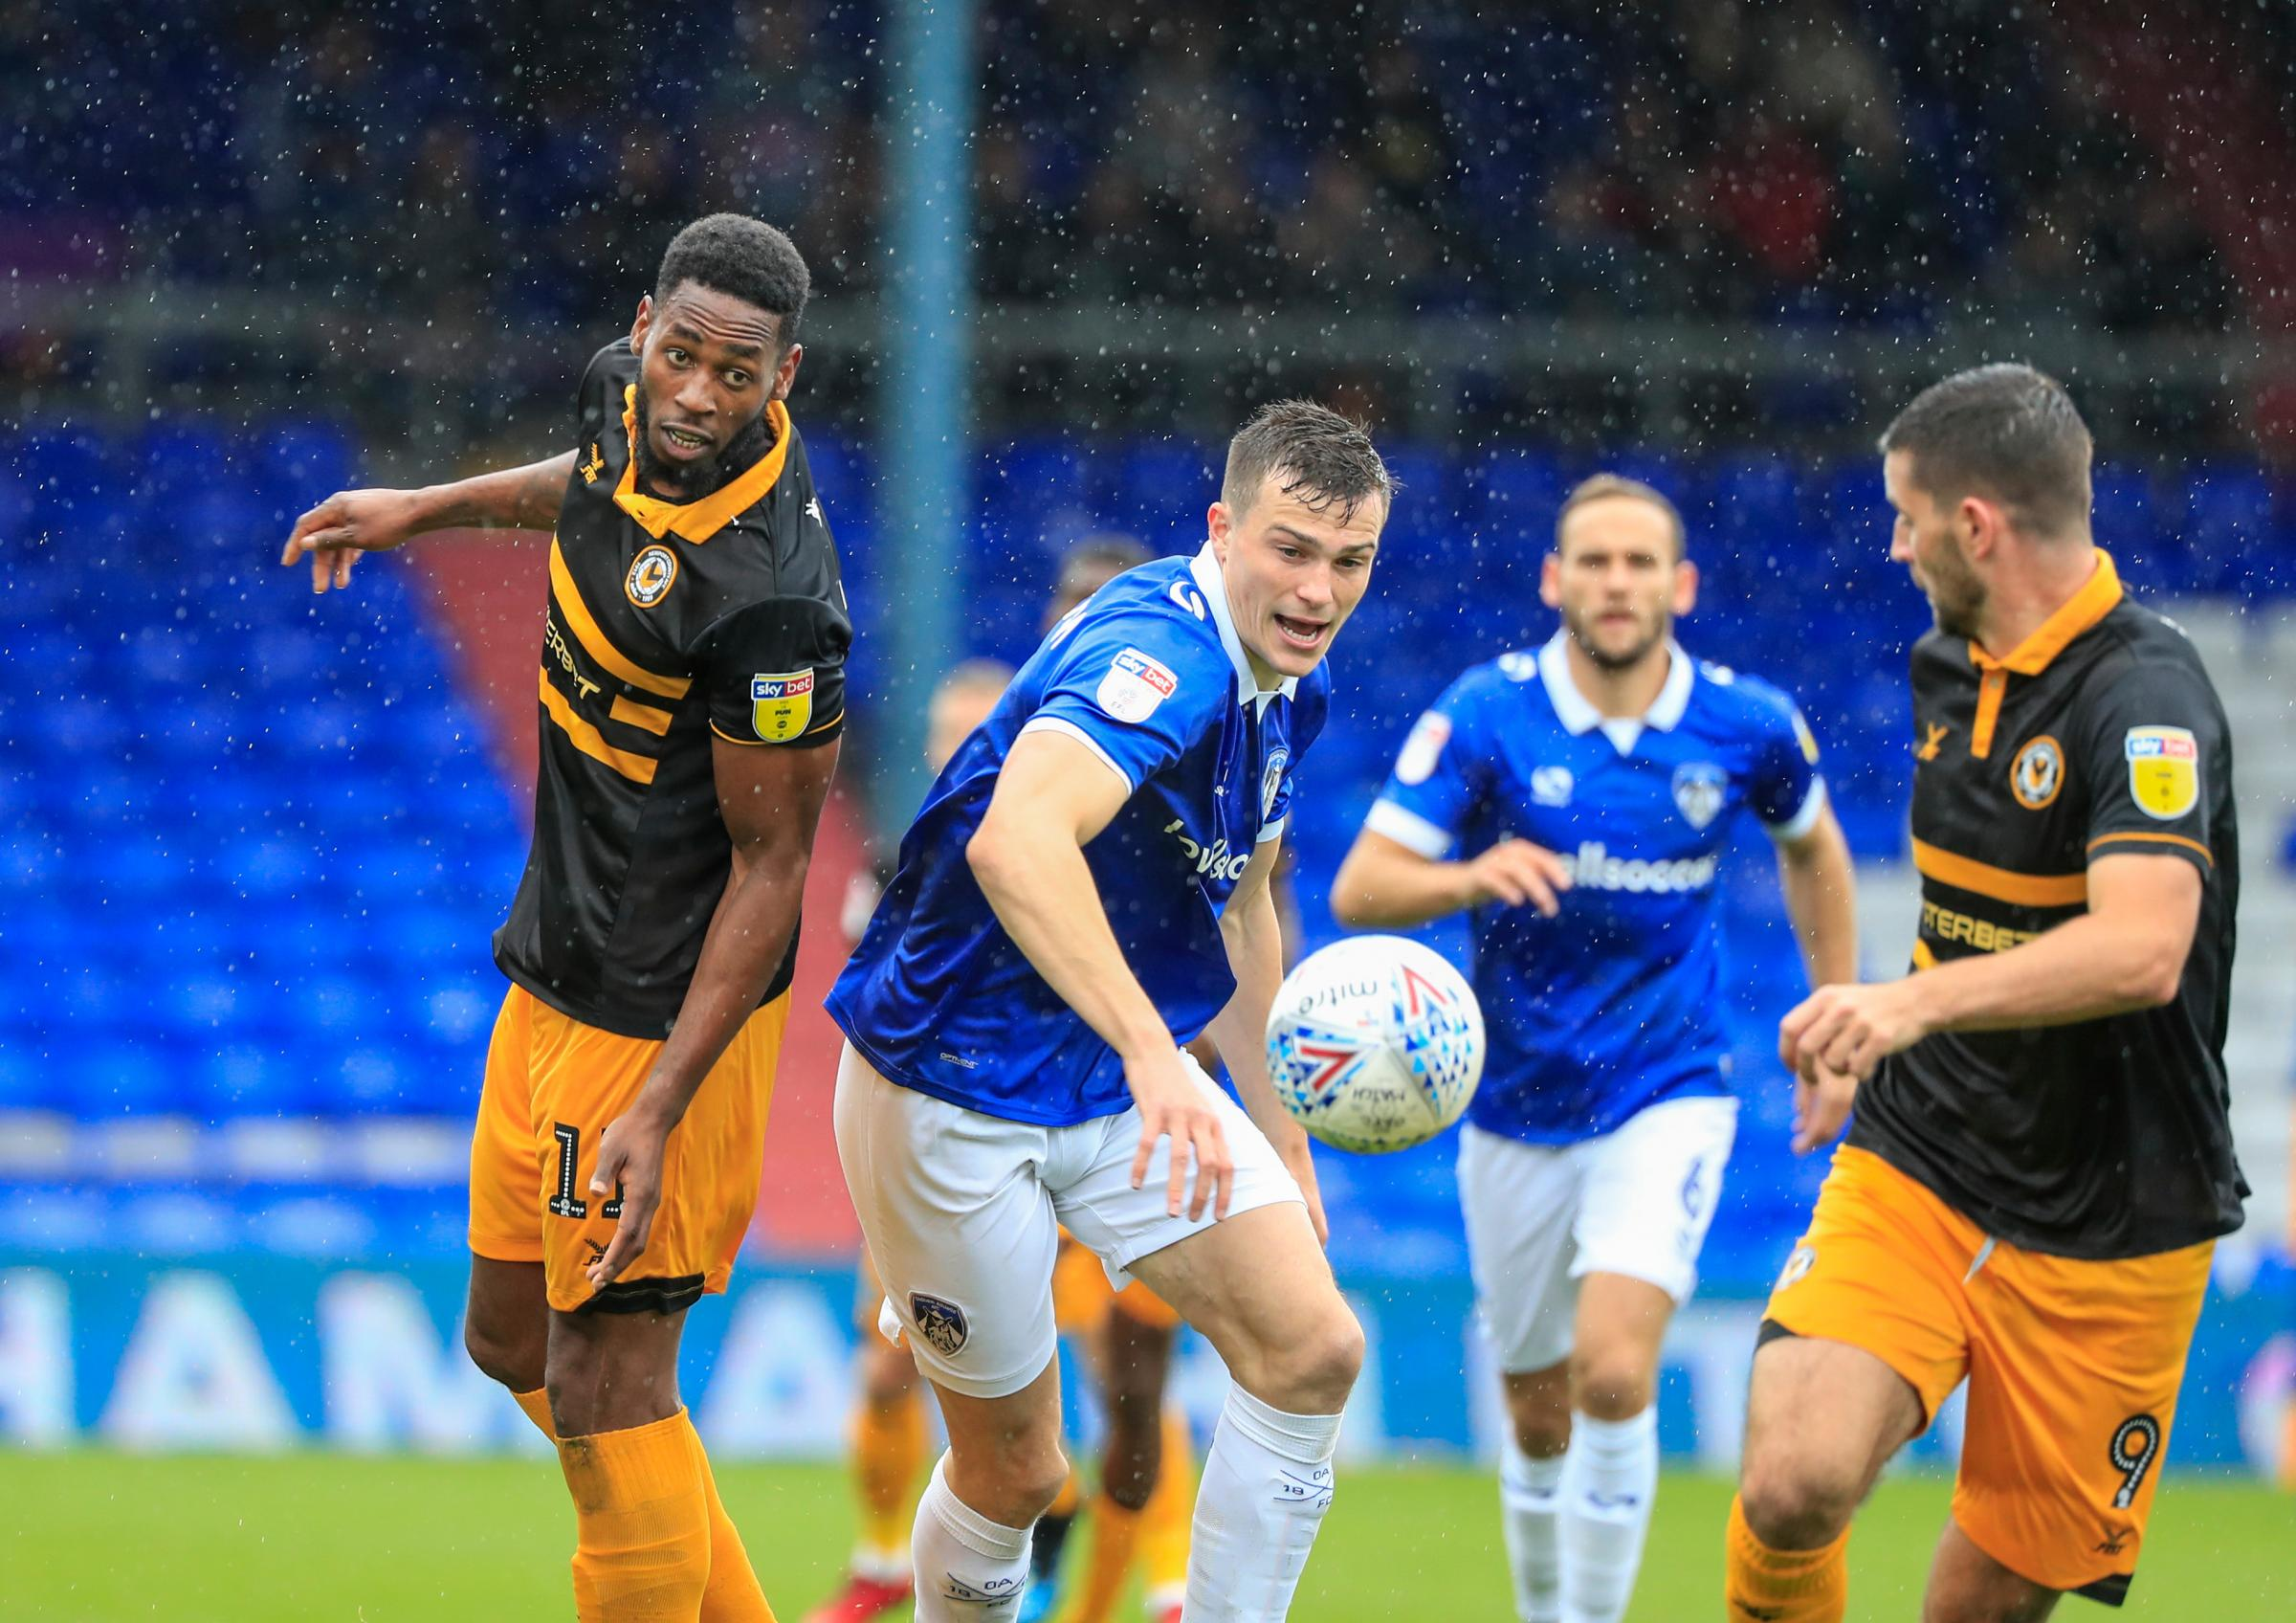 STRUGGLING: Newport County strikers Jamille Matt, left, and Padraig Amond, right, played with injury problems at Oldham Athletic. Pictures: Huw Evans Agency